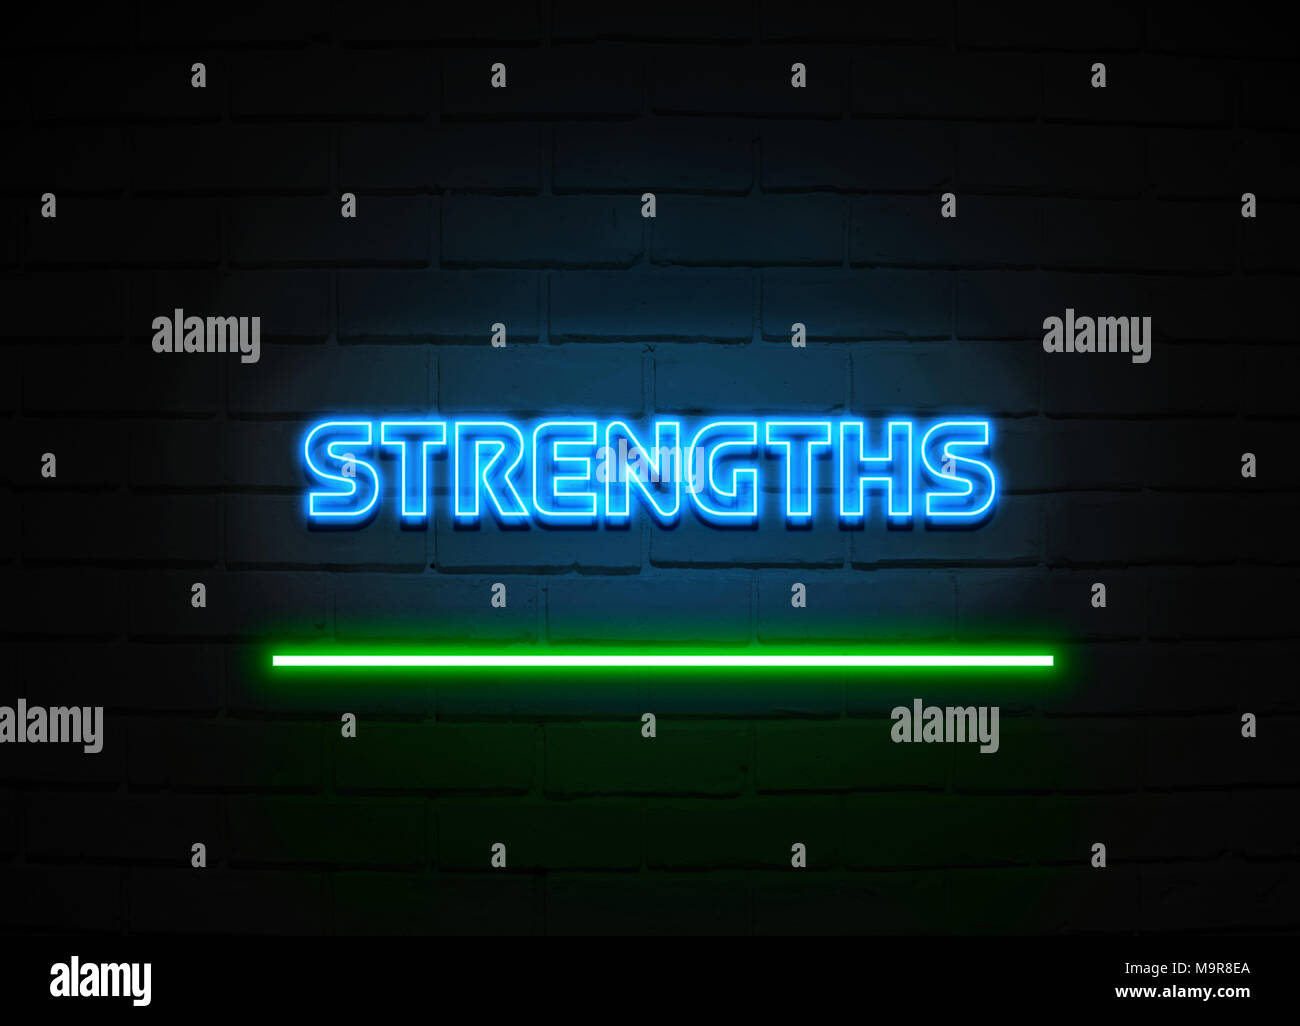 Strengths neon sign - Glowing Neon Sign on brickwall wall - 3D rendered royalty free stock illustration. - Stock Image